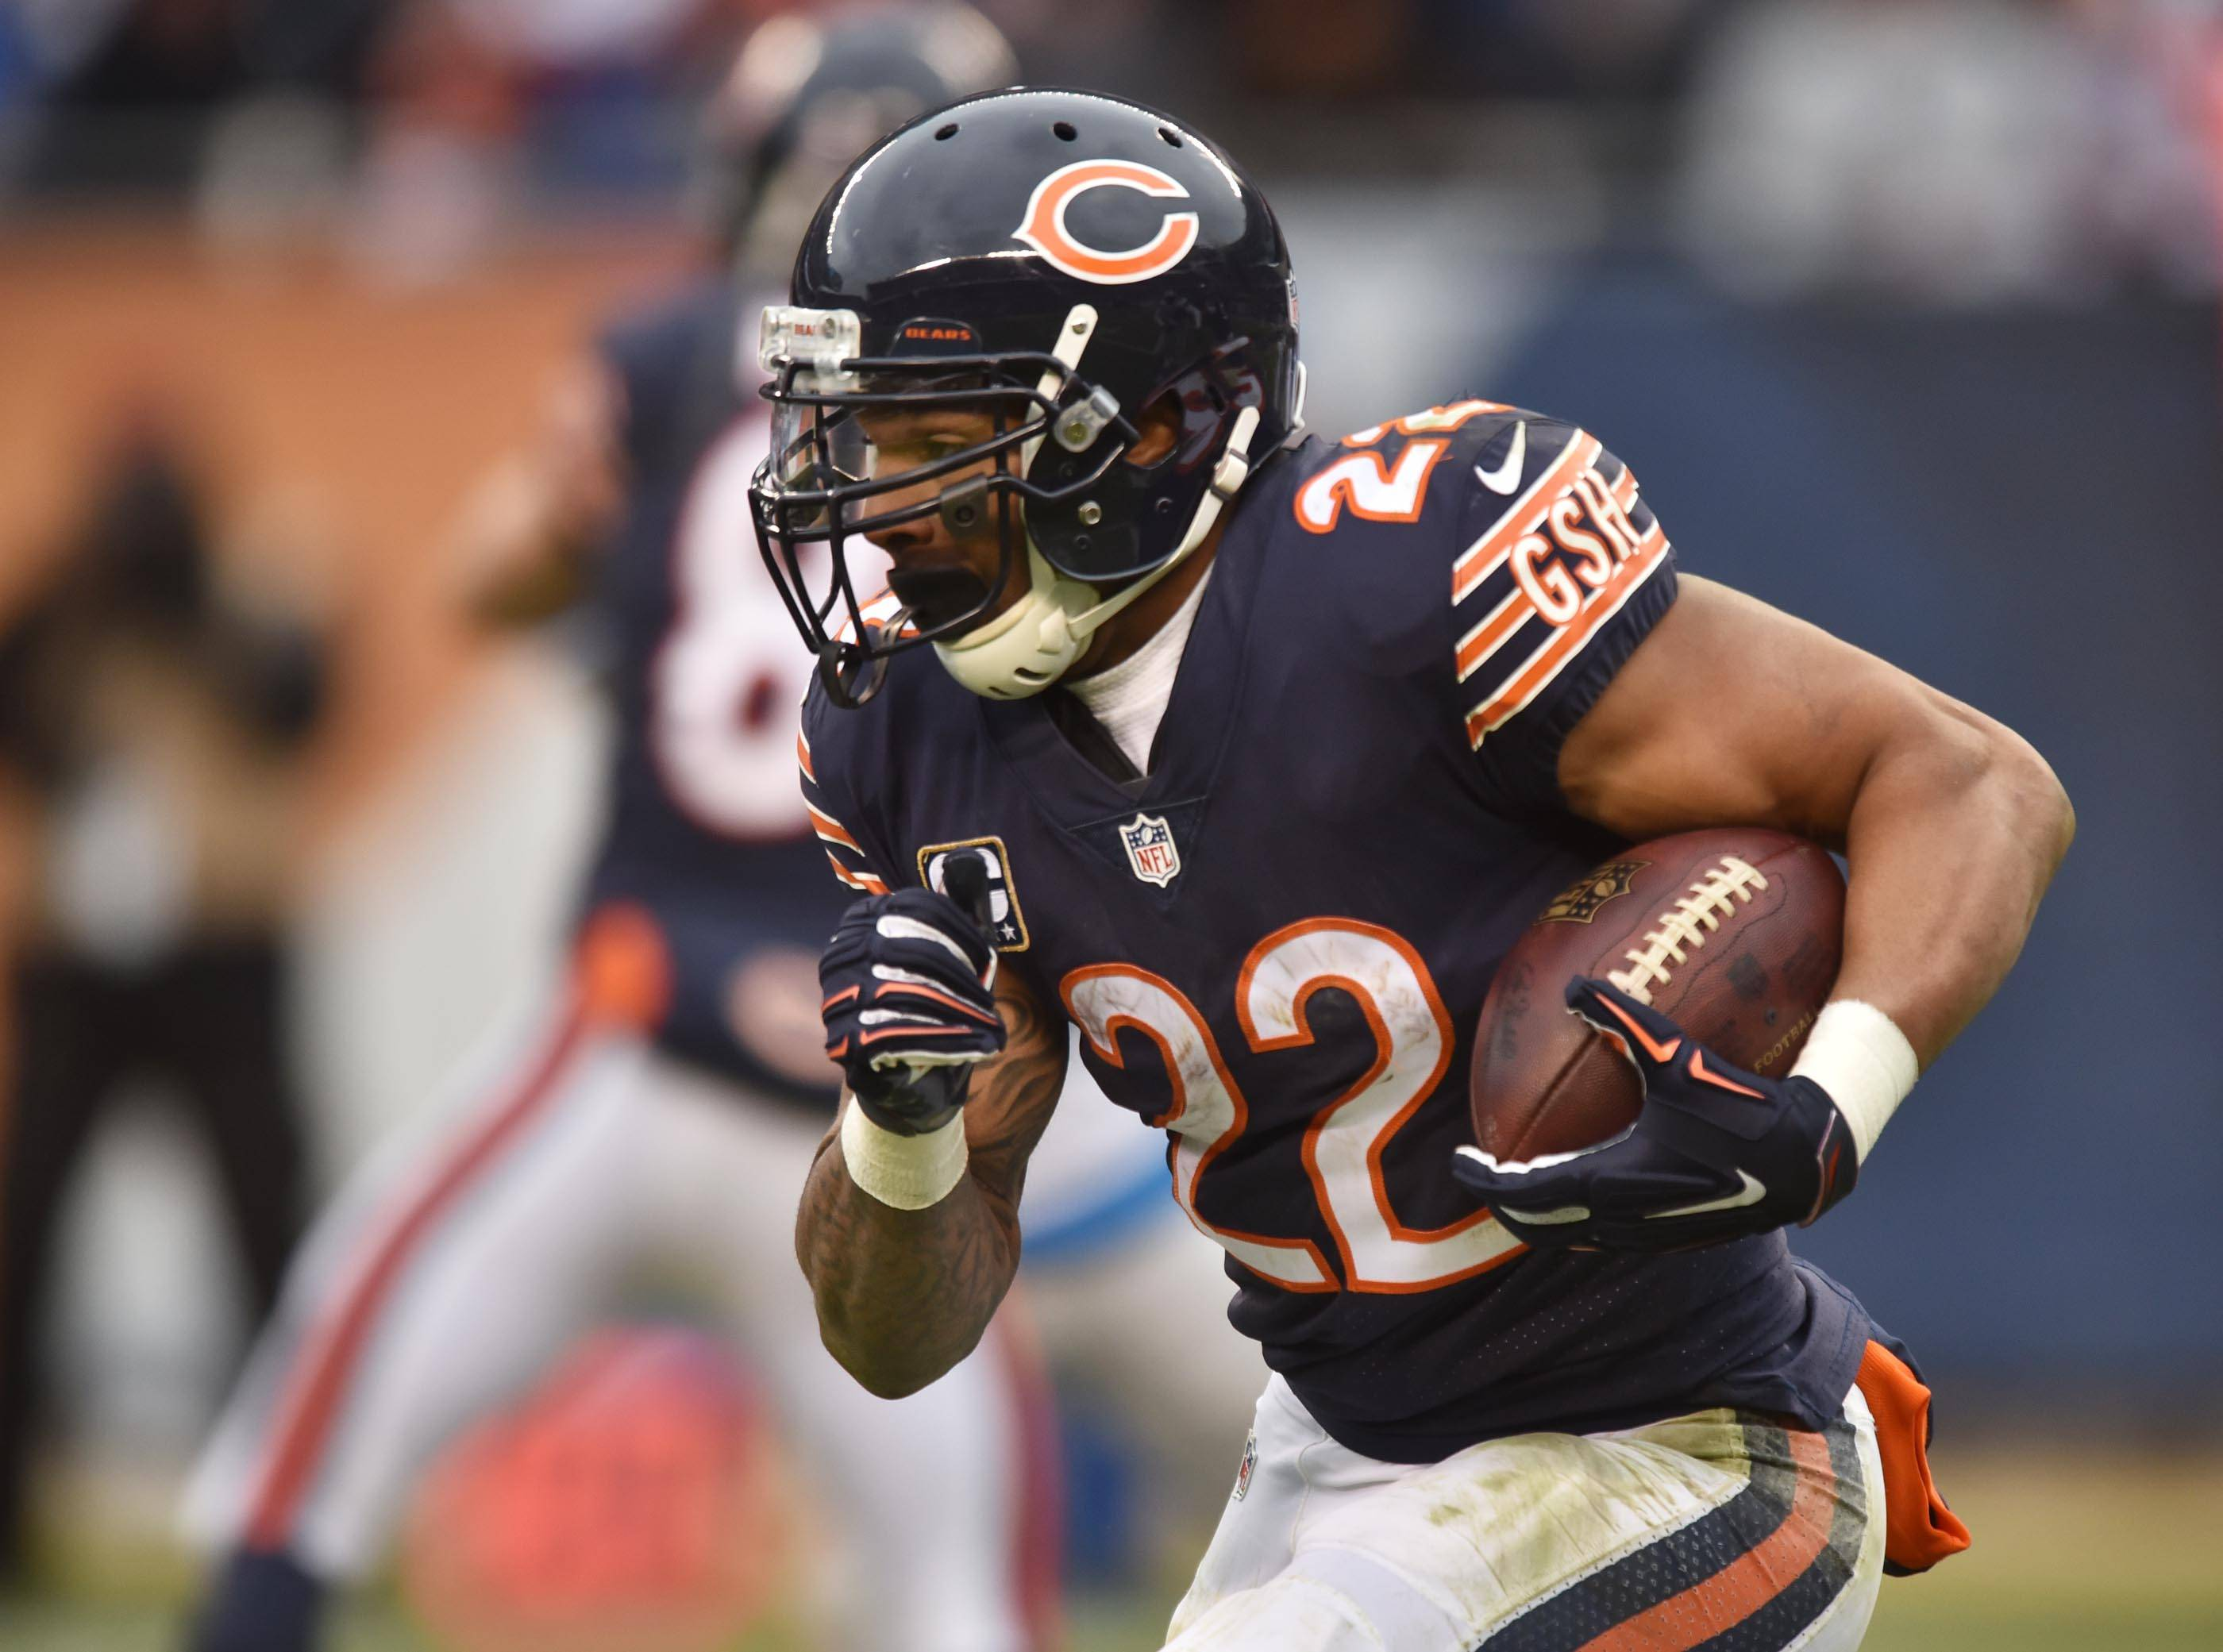 Chicago Bears running back Matt Forte announced Friday morning on Instagram that the Bears will not attempt to re-sign him.